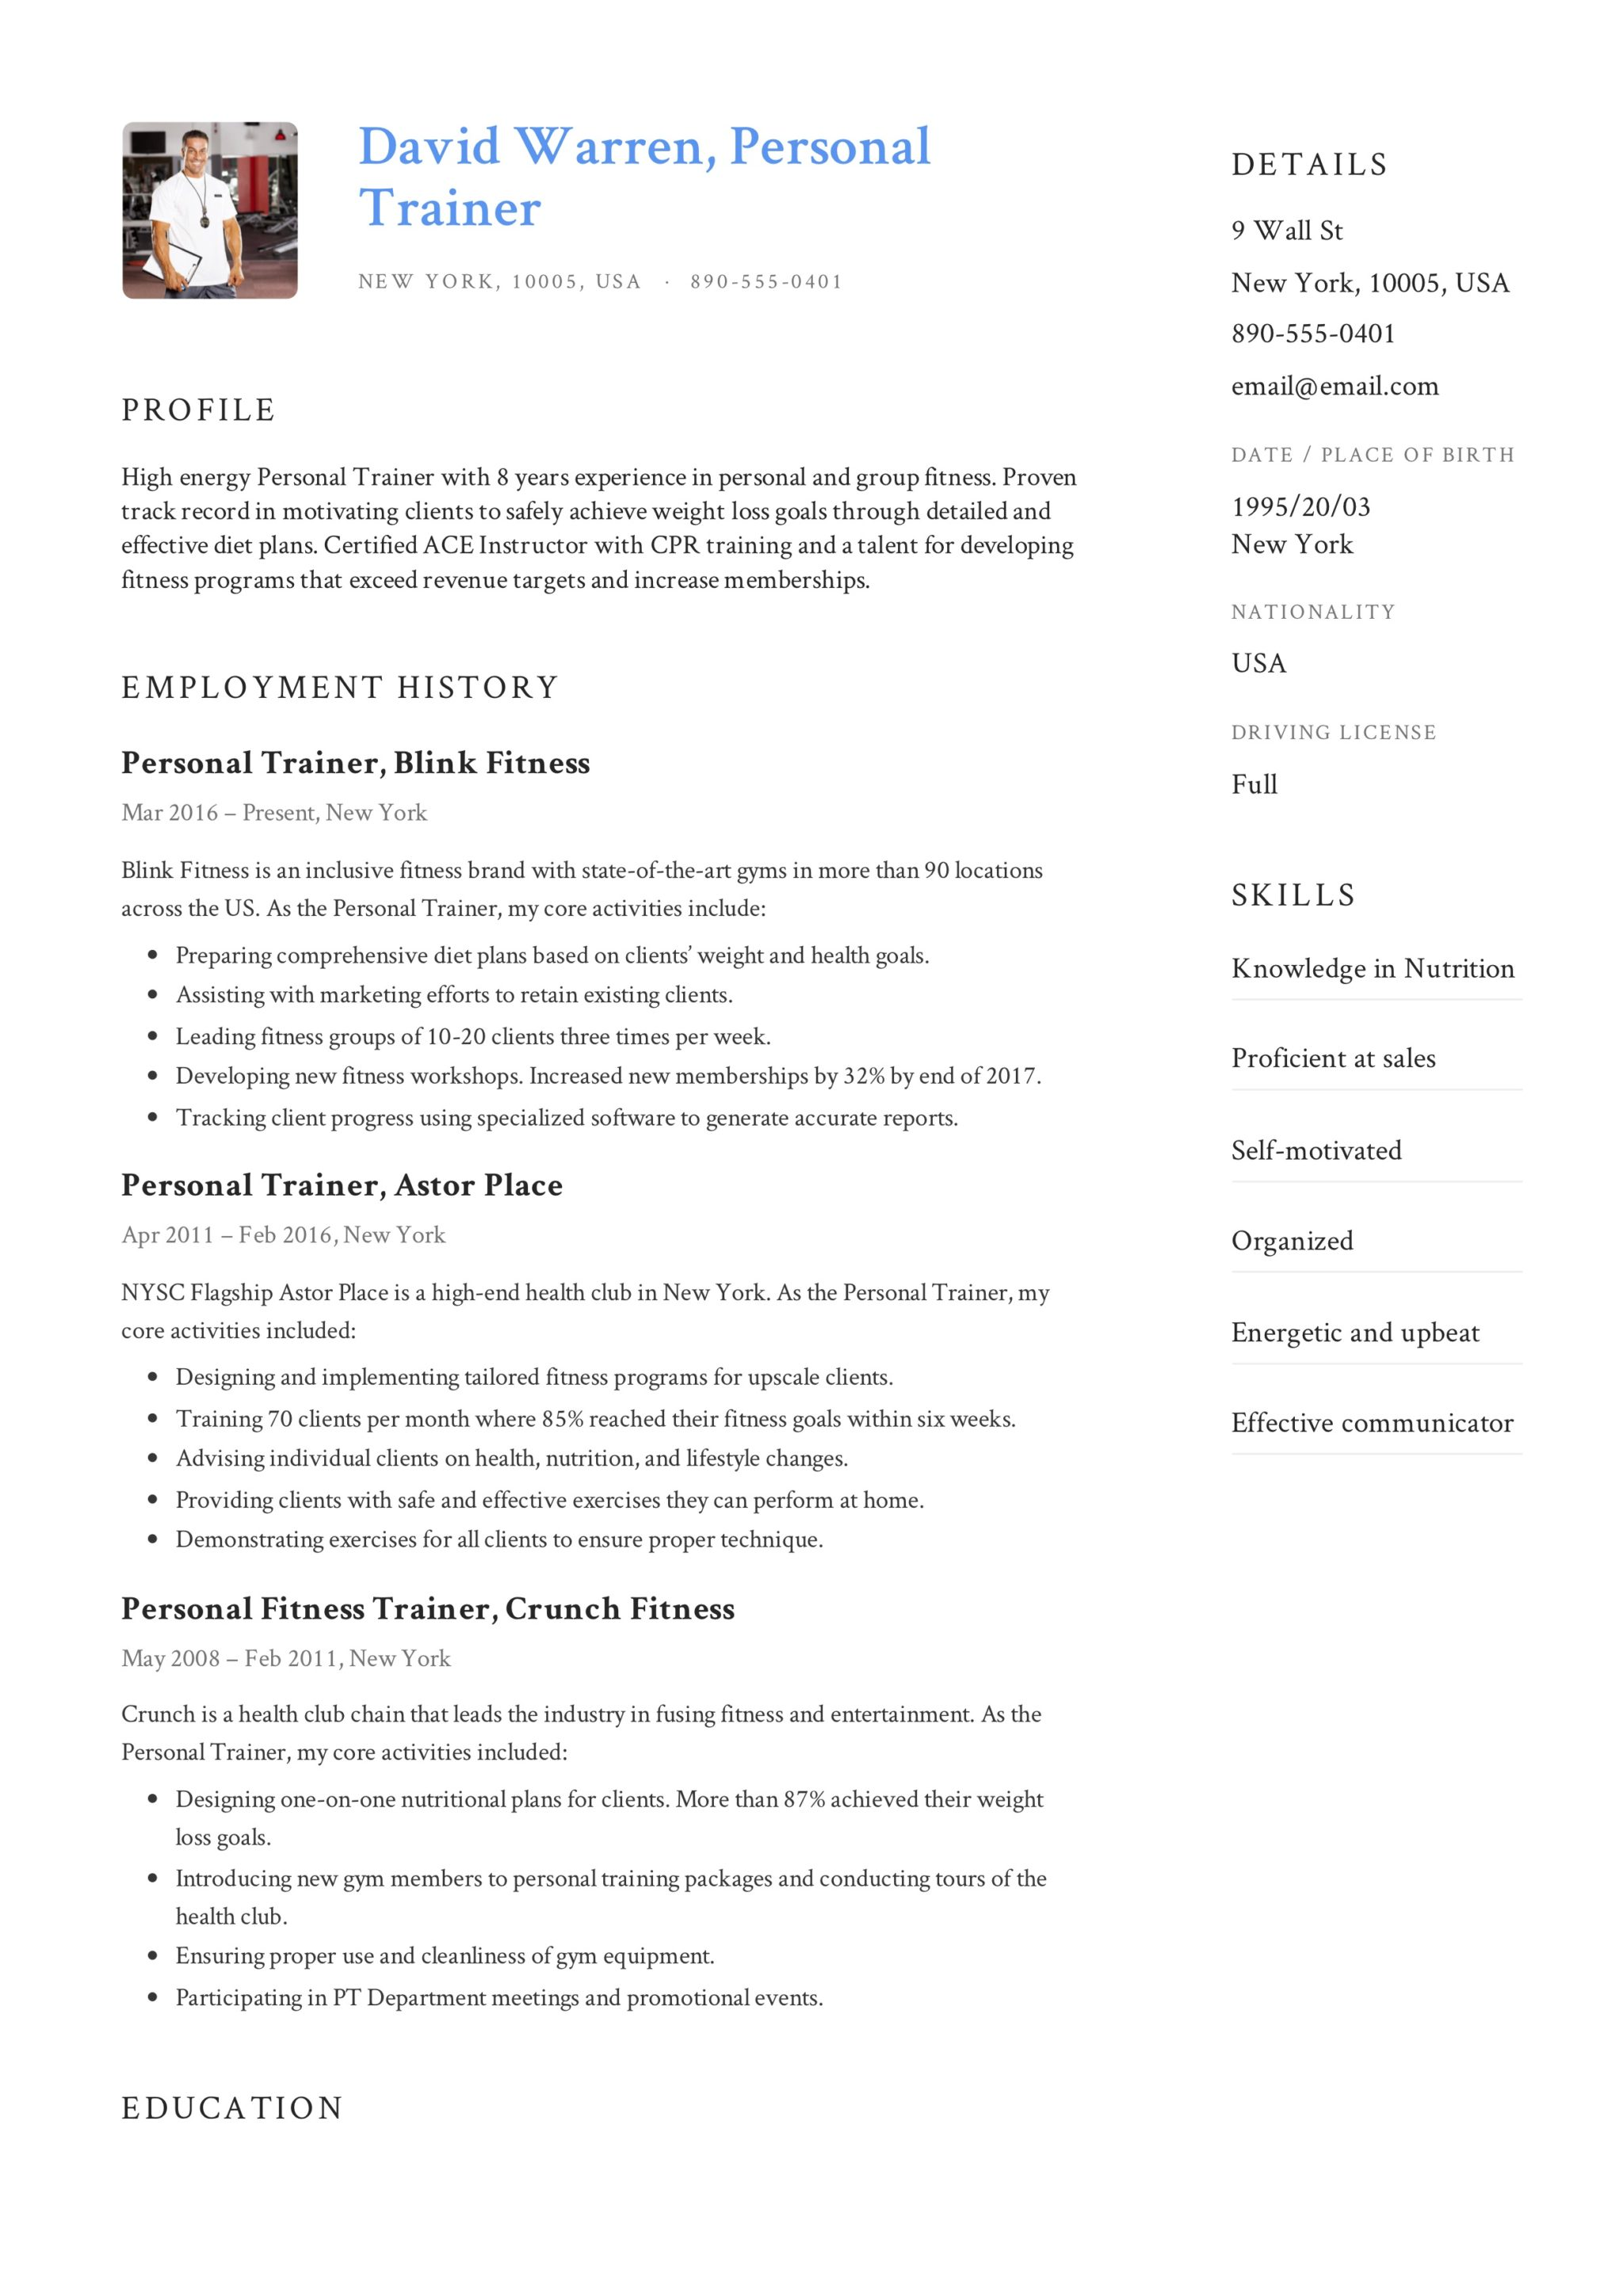 Sample Resume - Personal Trainer